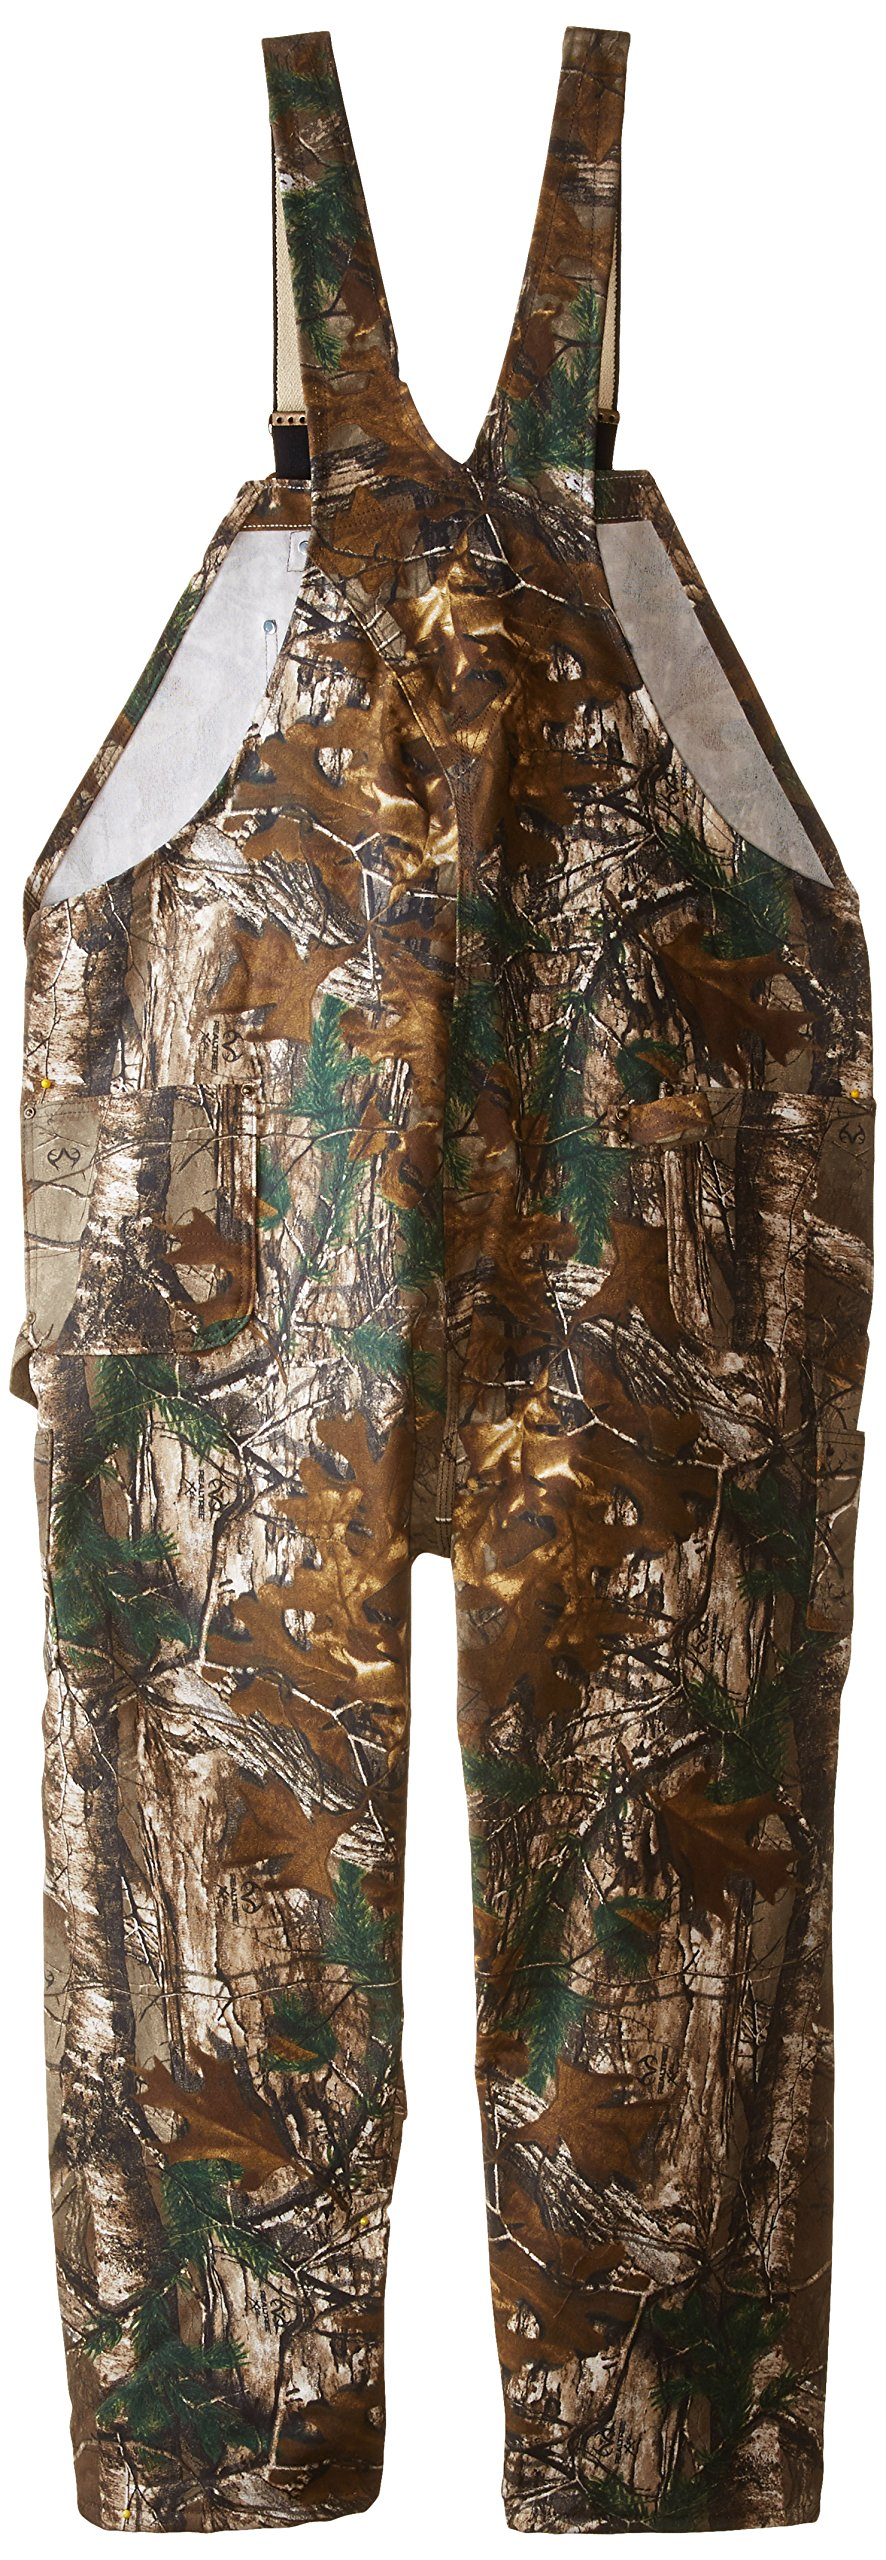 Carhartt Men's Big & Tall Quilt Lined Camo Bib Overalls,Realtree Xtra,XXX-Large Short by Carhartt (Image #2)